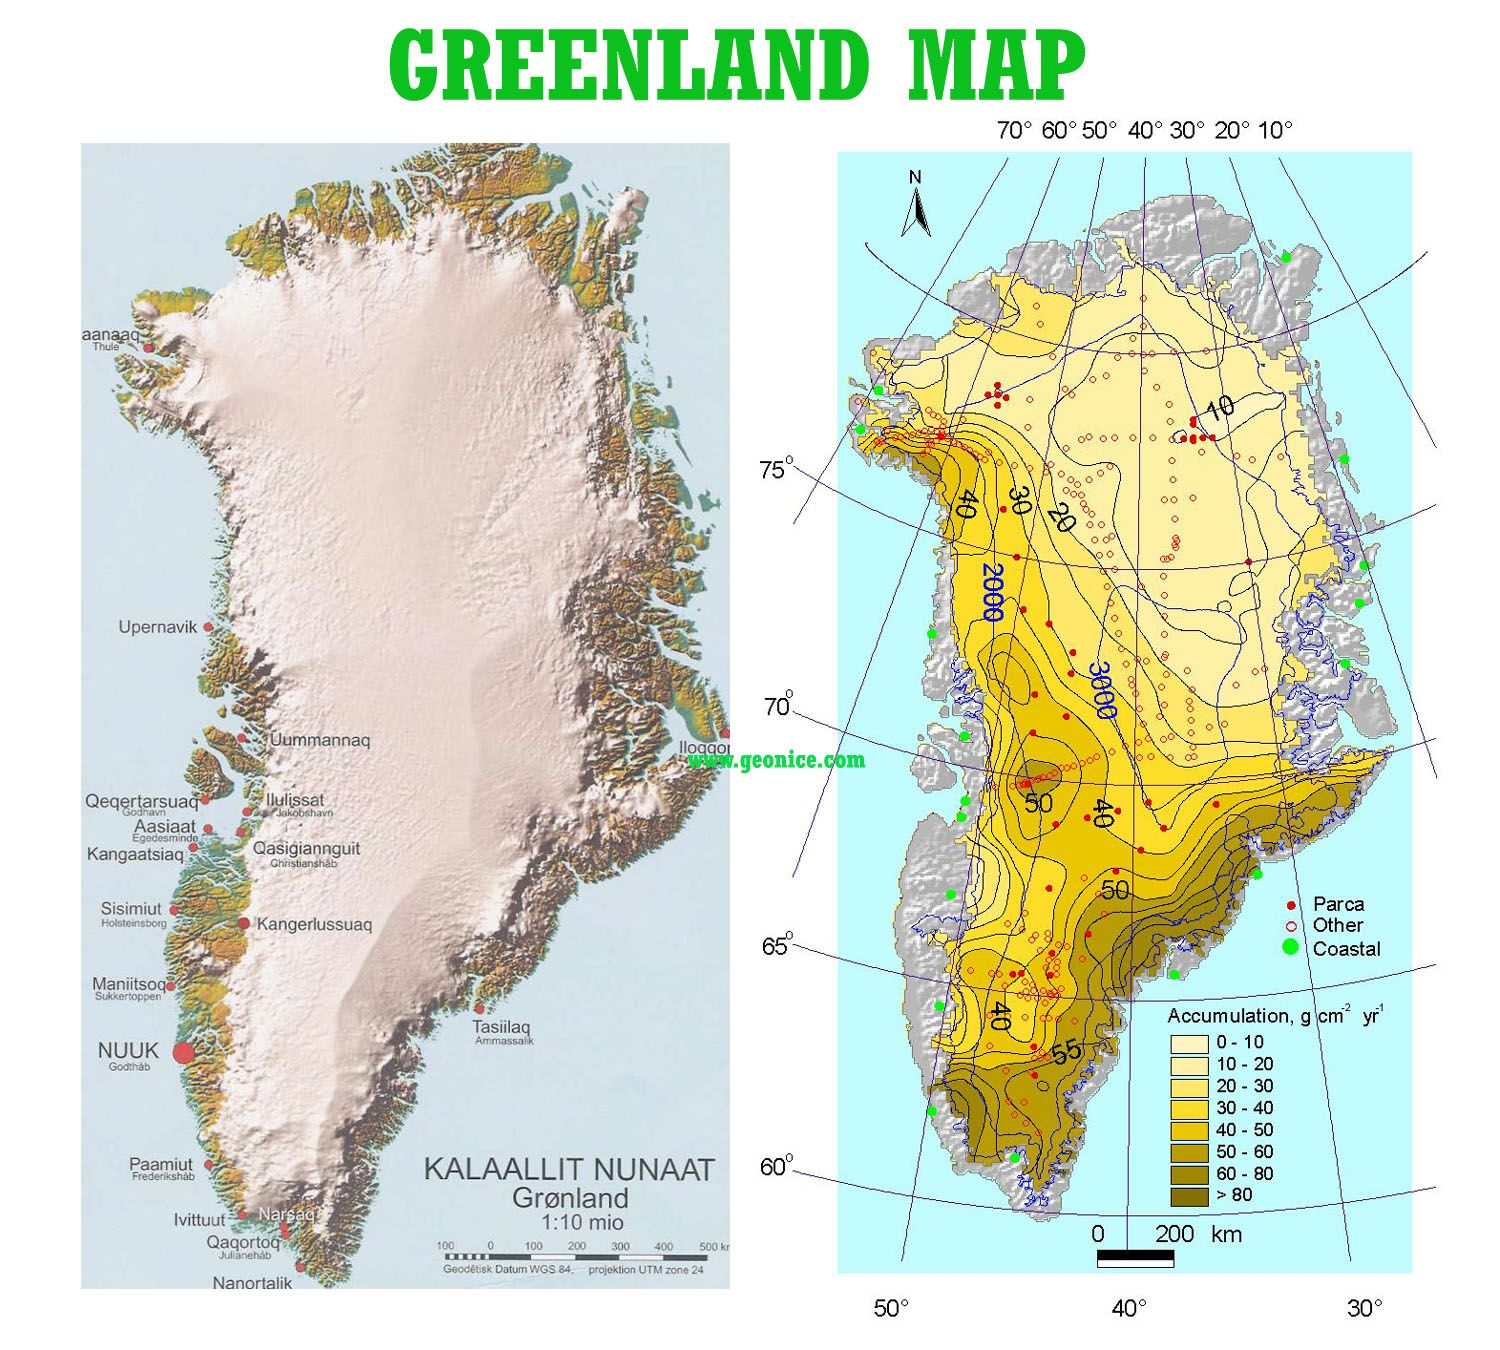 Greenland Topo/Map Travel | TOPO MAPS | Greenland map ... on lake contour maps, dnr lake maps, hume lake california hunting maps, texoma topography maps, national geographic maps, aerial lake maps, satellite lake maps, europe lake maps, tennessee river navigation chart maps, campground site maps, gps lake maps, navionics lake maps, usgs lake maps, best 2014 lake fork tx maps,